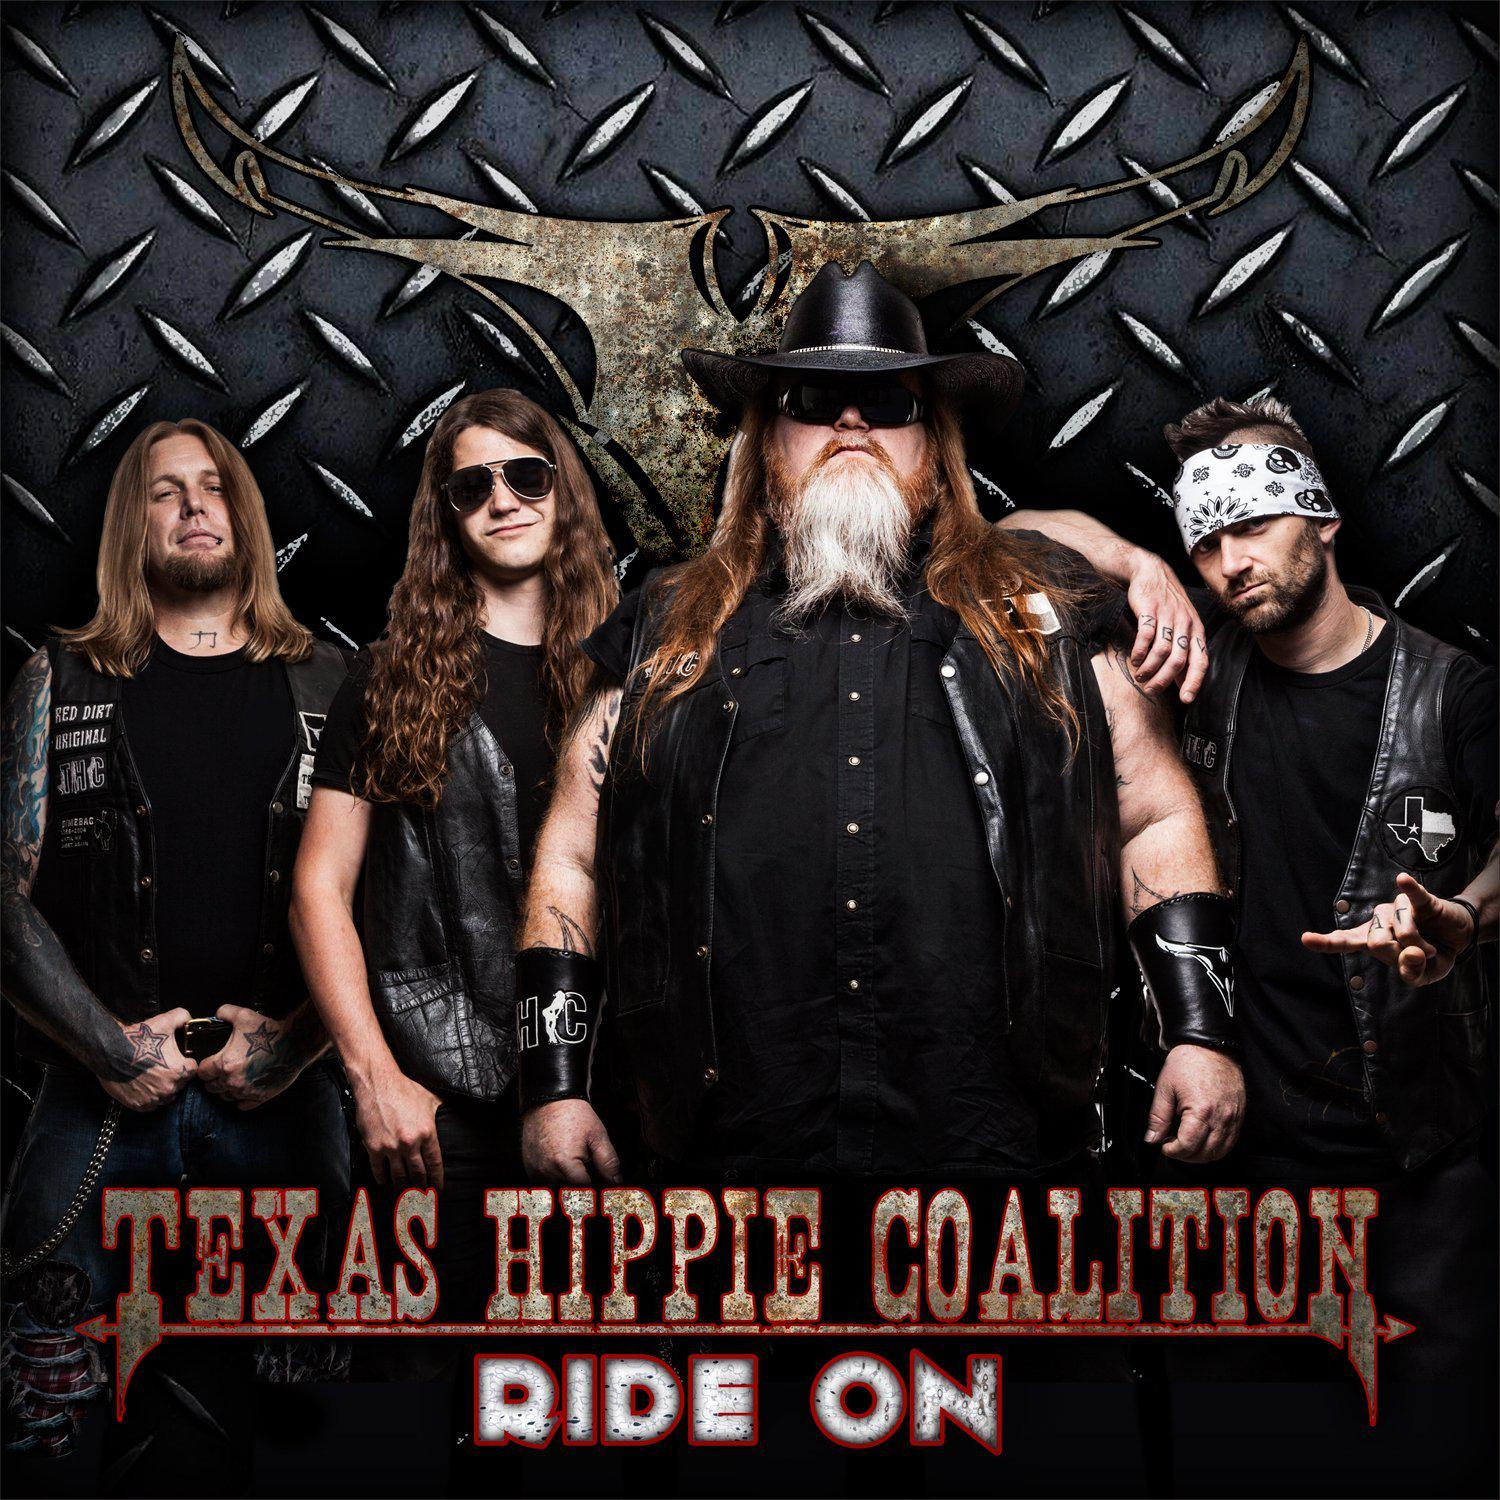 I Am A Rider Go Wider Mp3 Song Download: Ride On (2014, Southern Metal